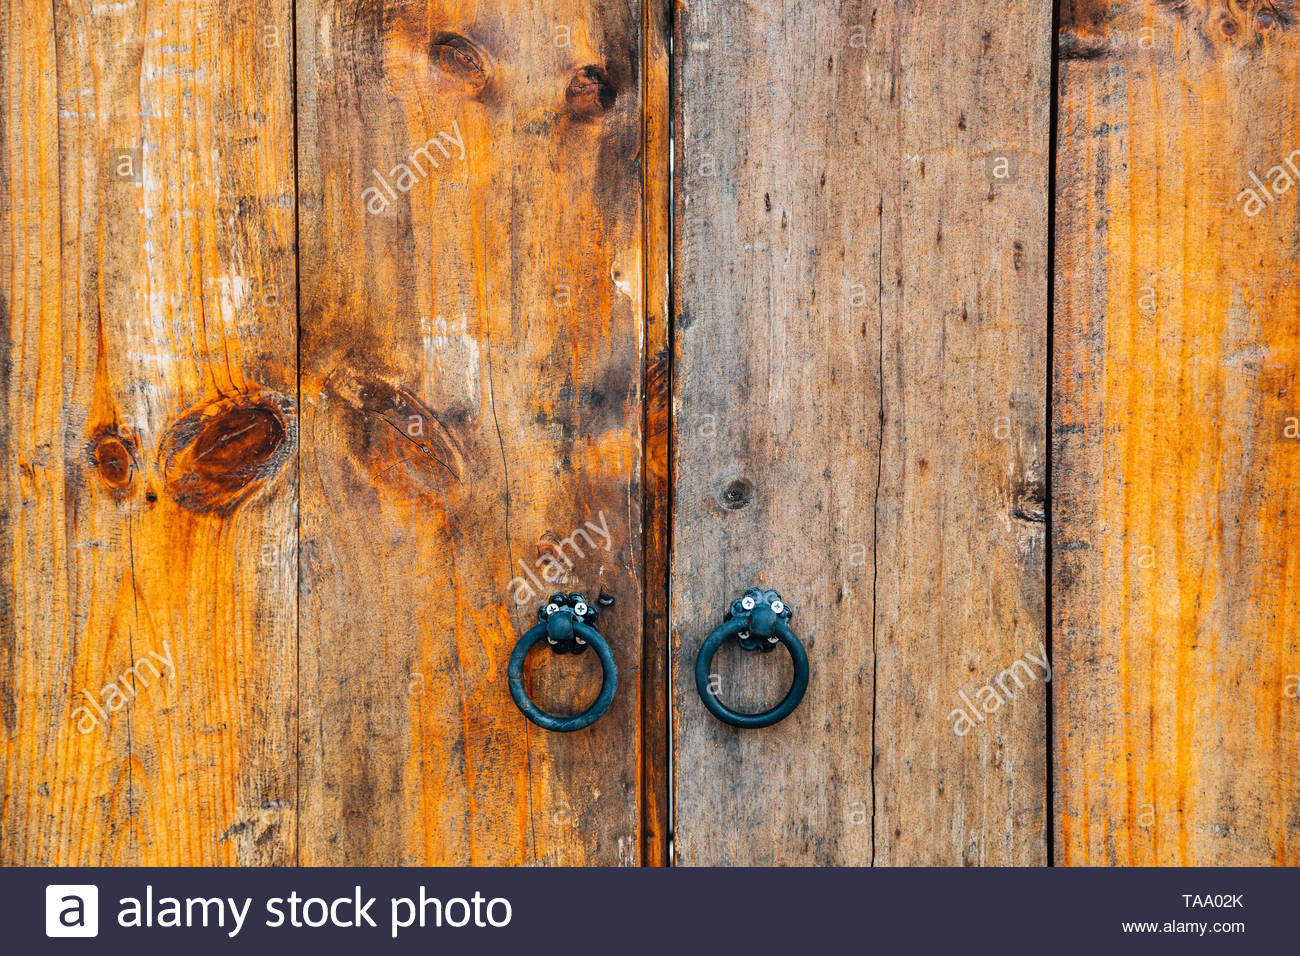 Korean traditional wooden door background - Stock Image